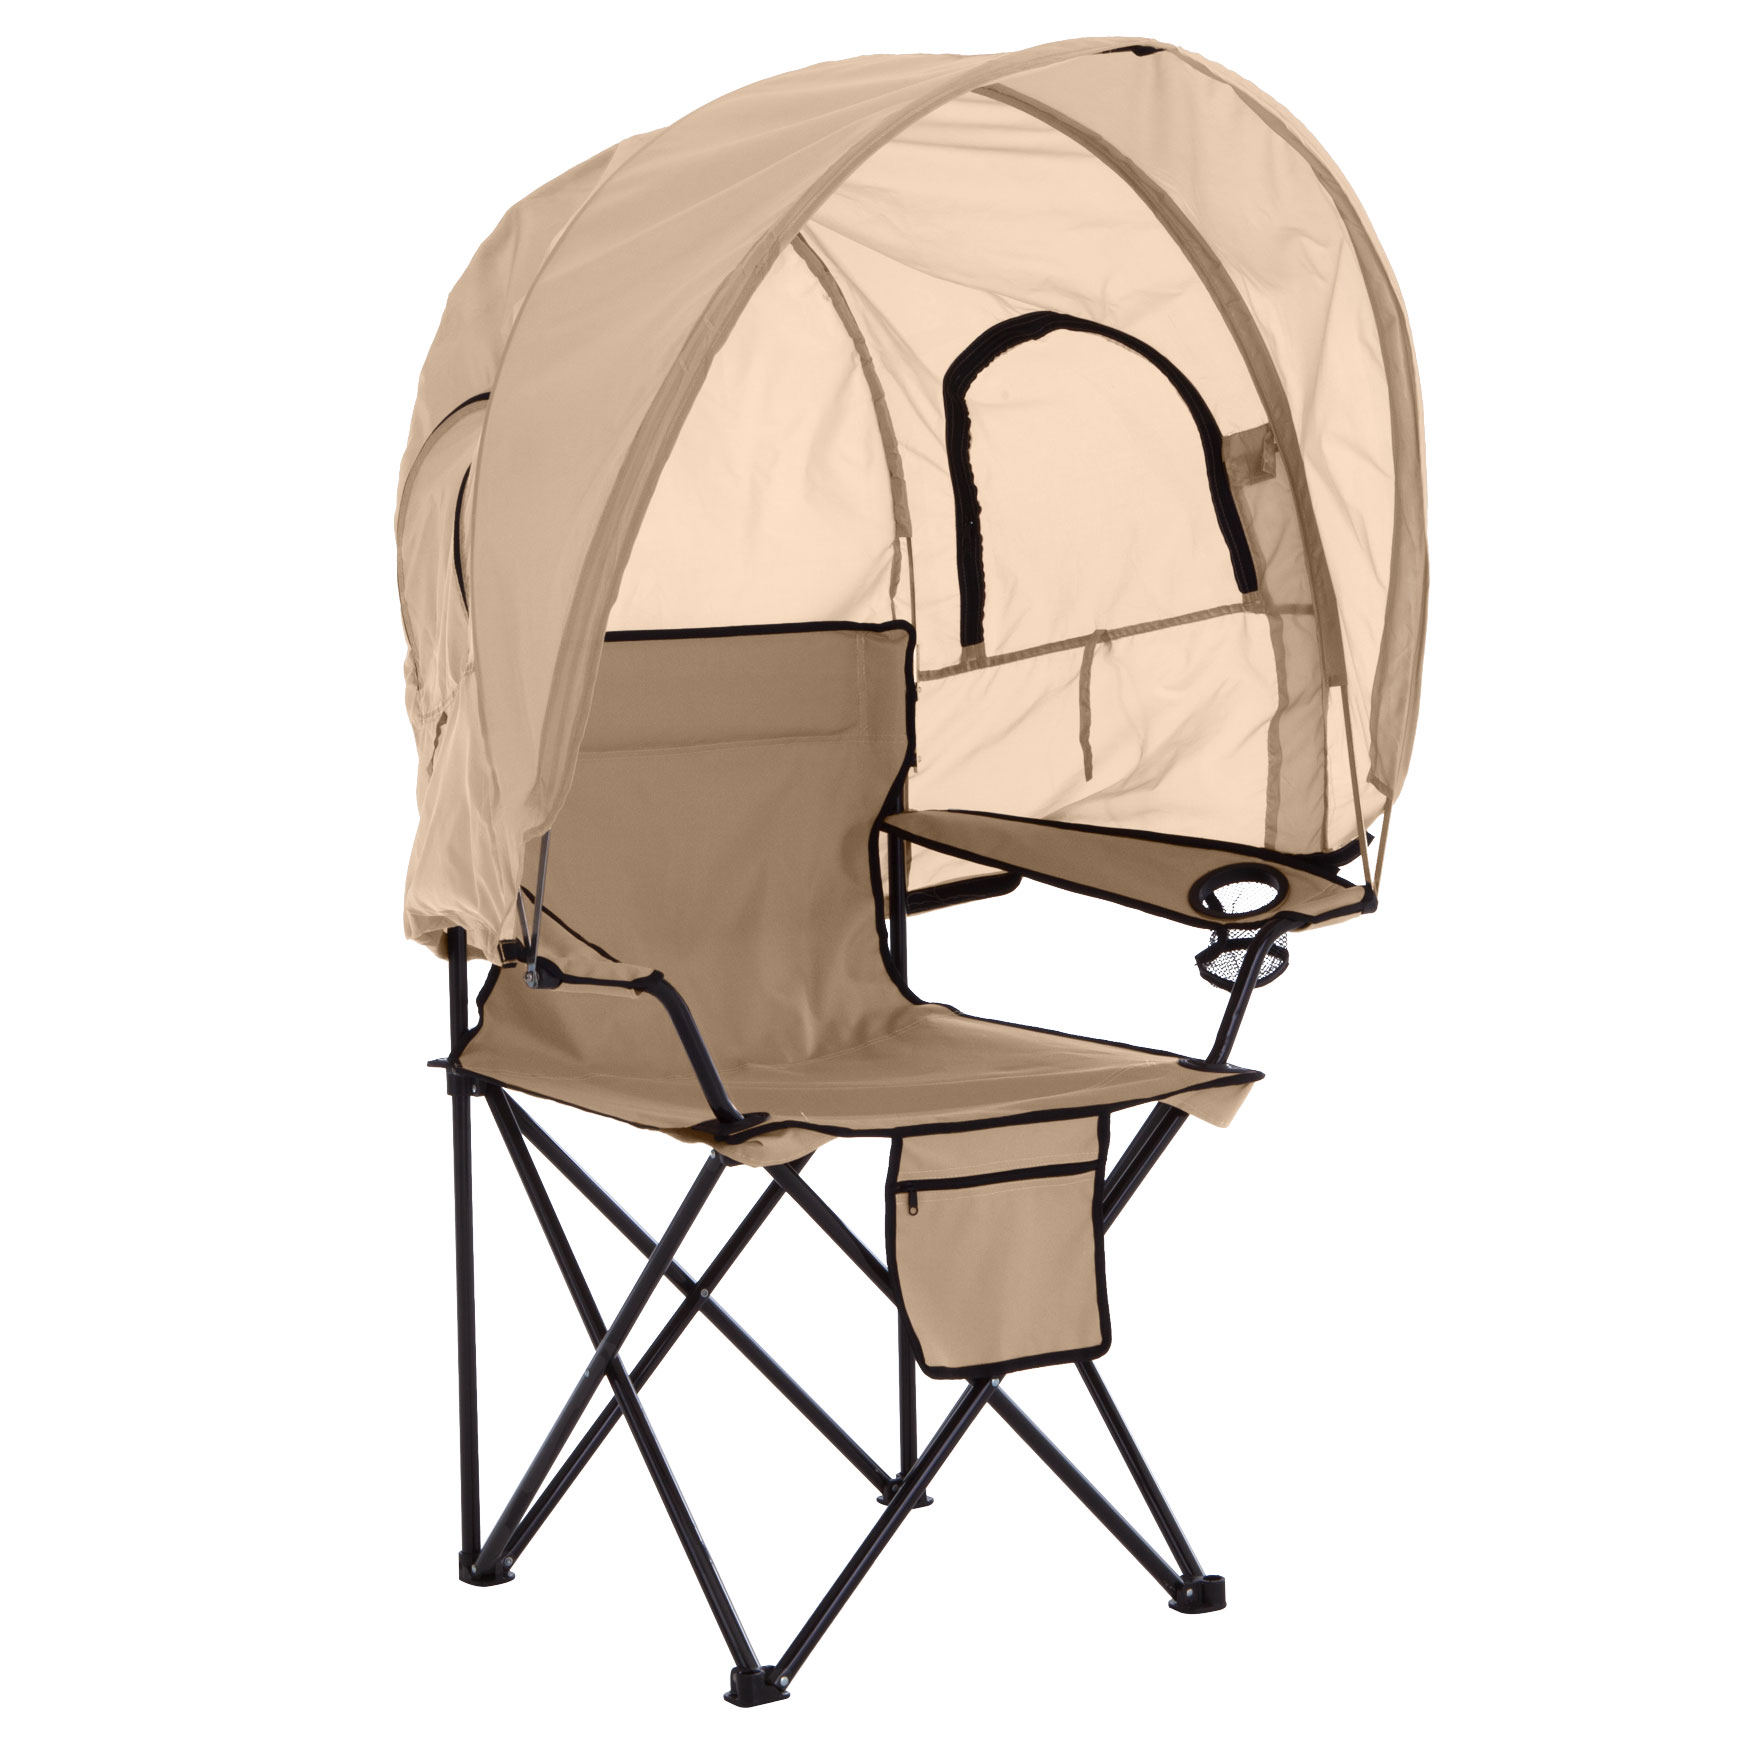 Camp Chair with Canopy,